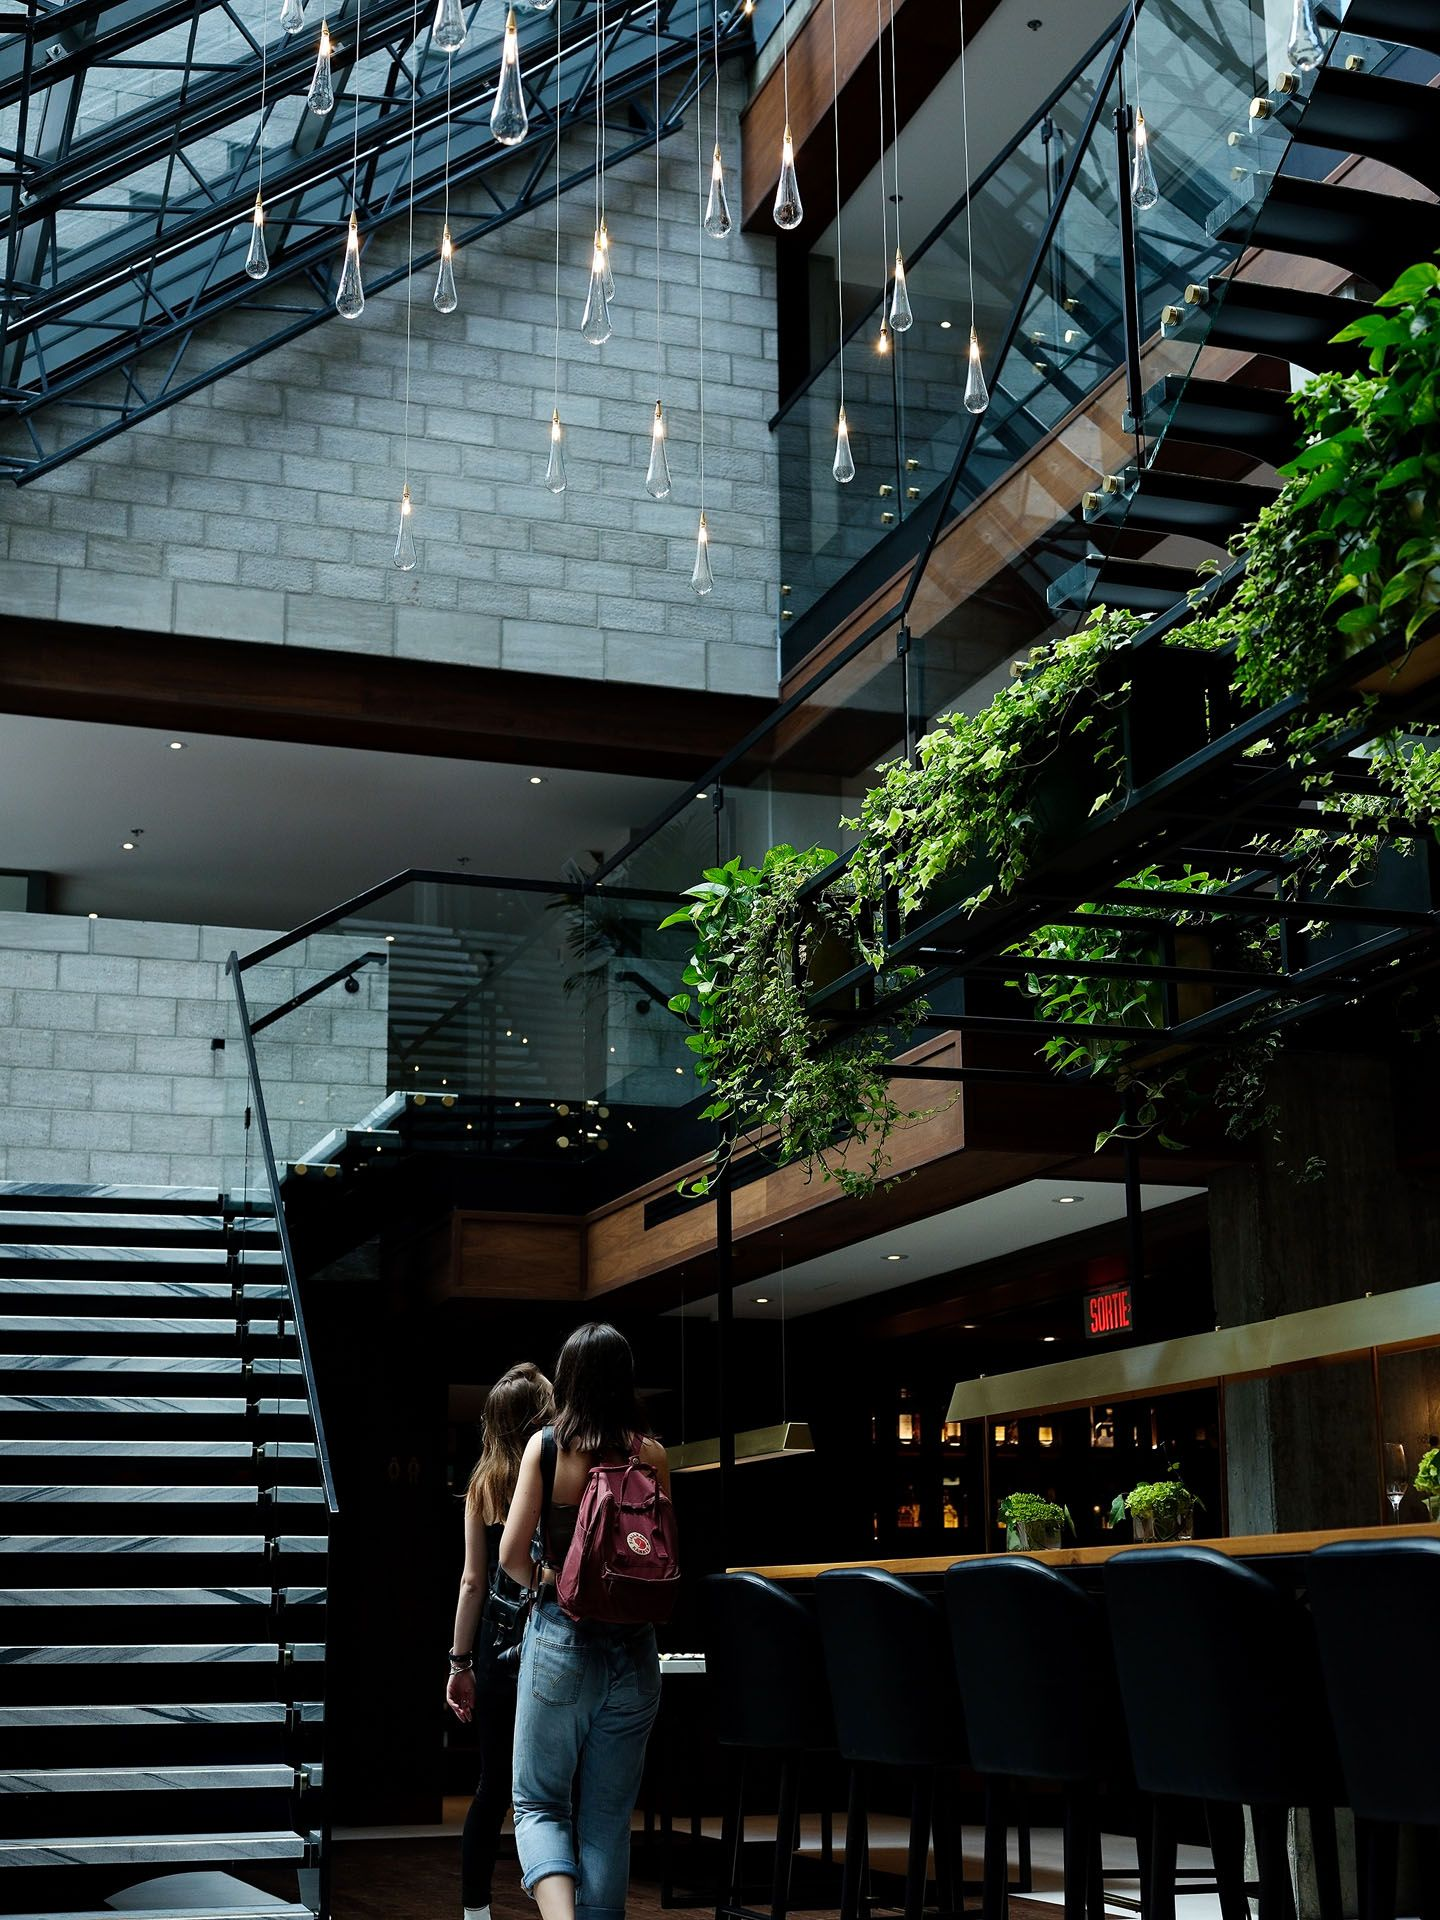 two girls walking under water drops shaped lights inside building photographed by Guillaume Simoneau as part of Off Duty Montreal series for The Wall Street Journal magazine